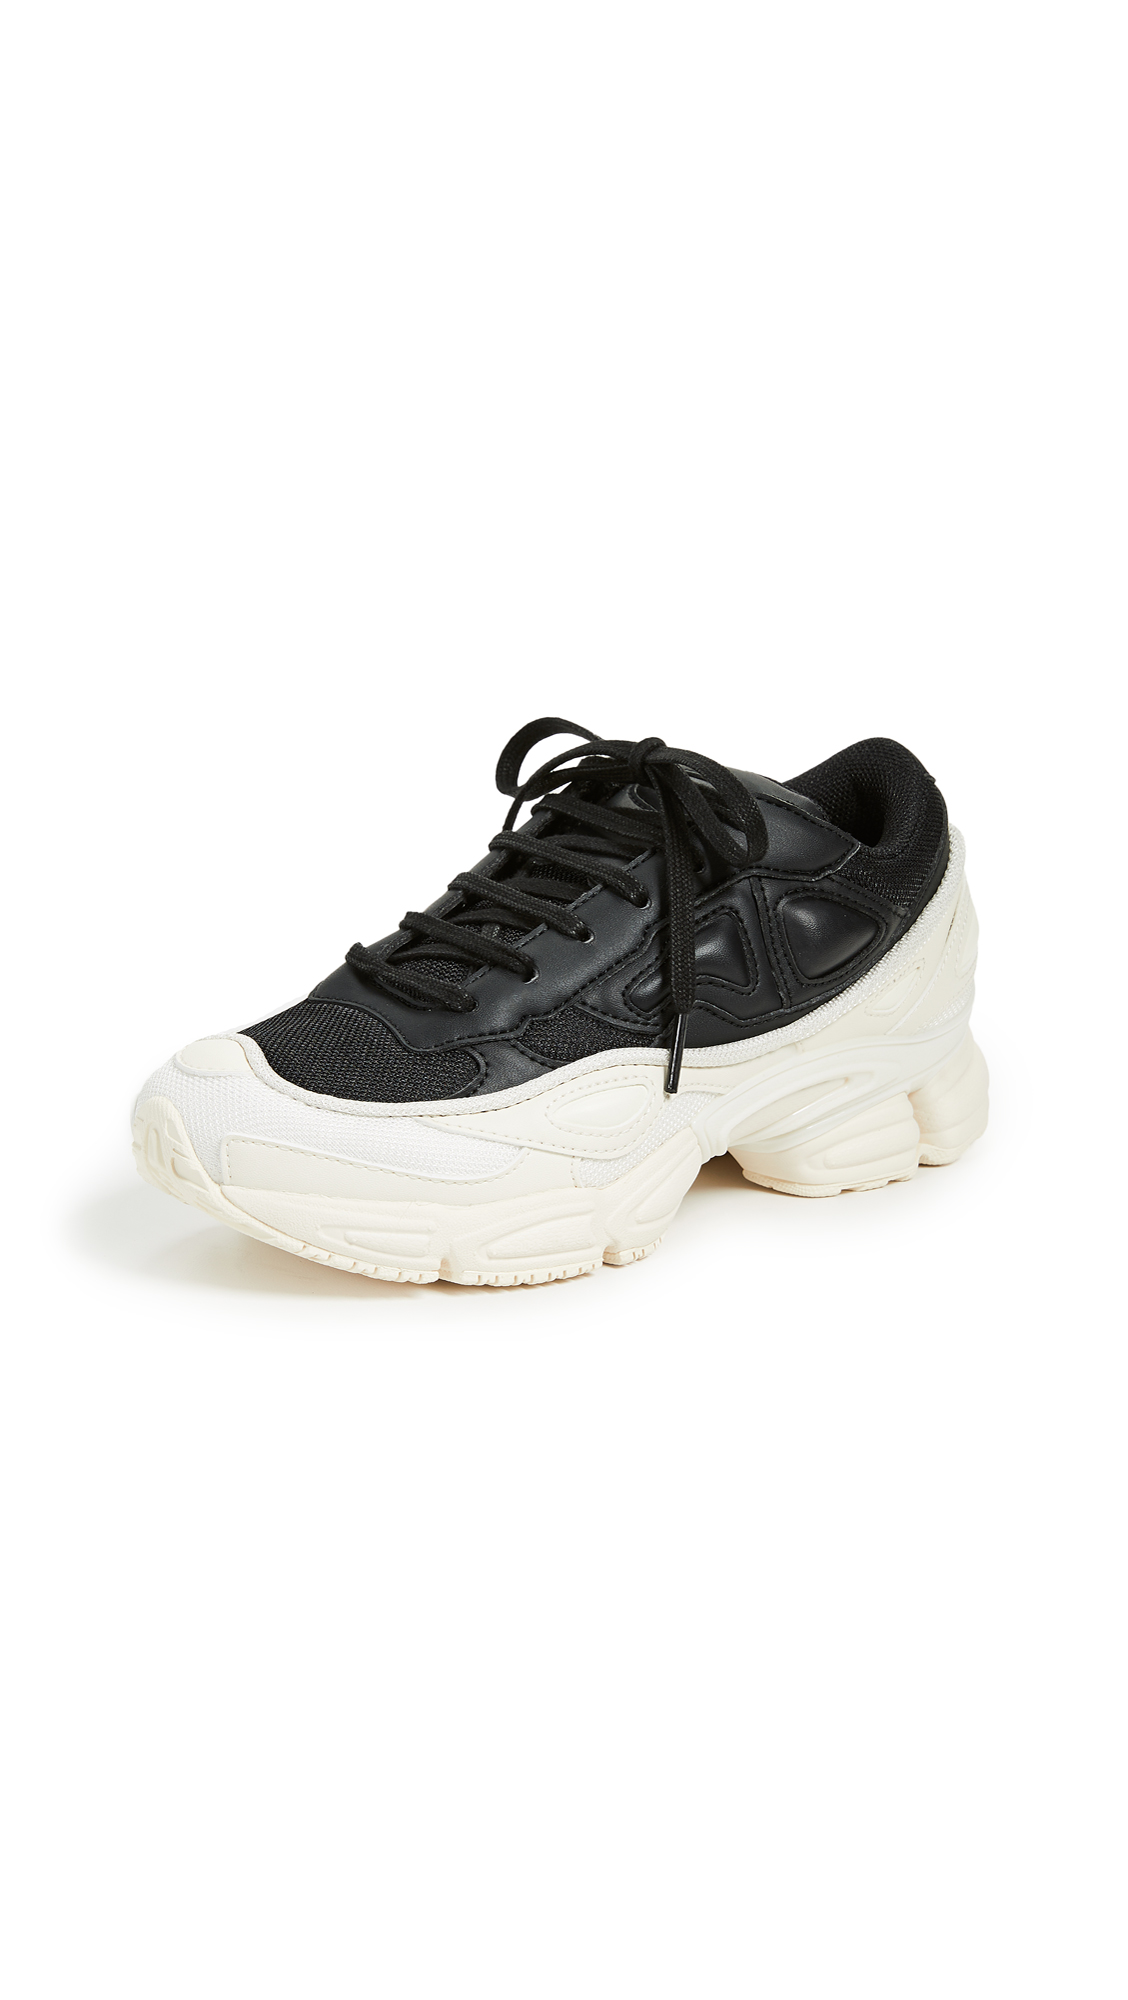 Adidas Raf Simons Ozweego Sneakers - Cream White/Core Black